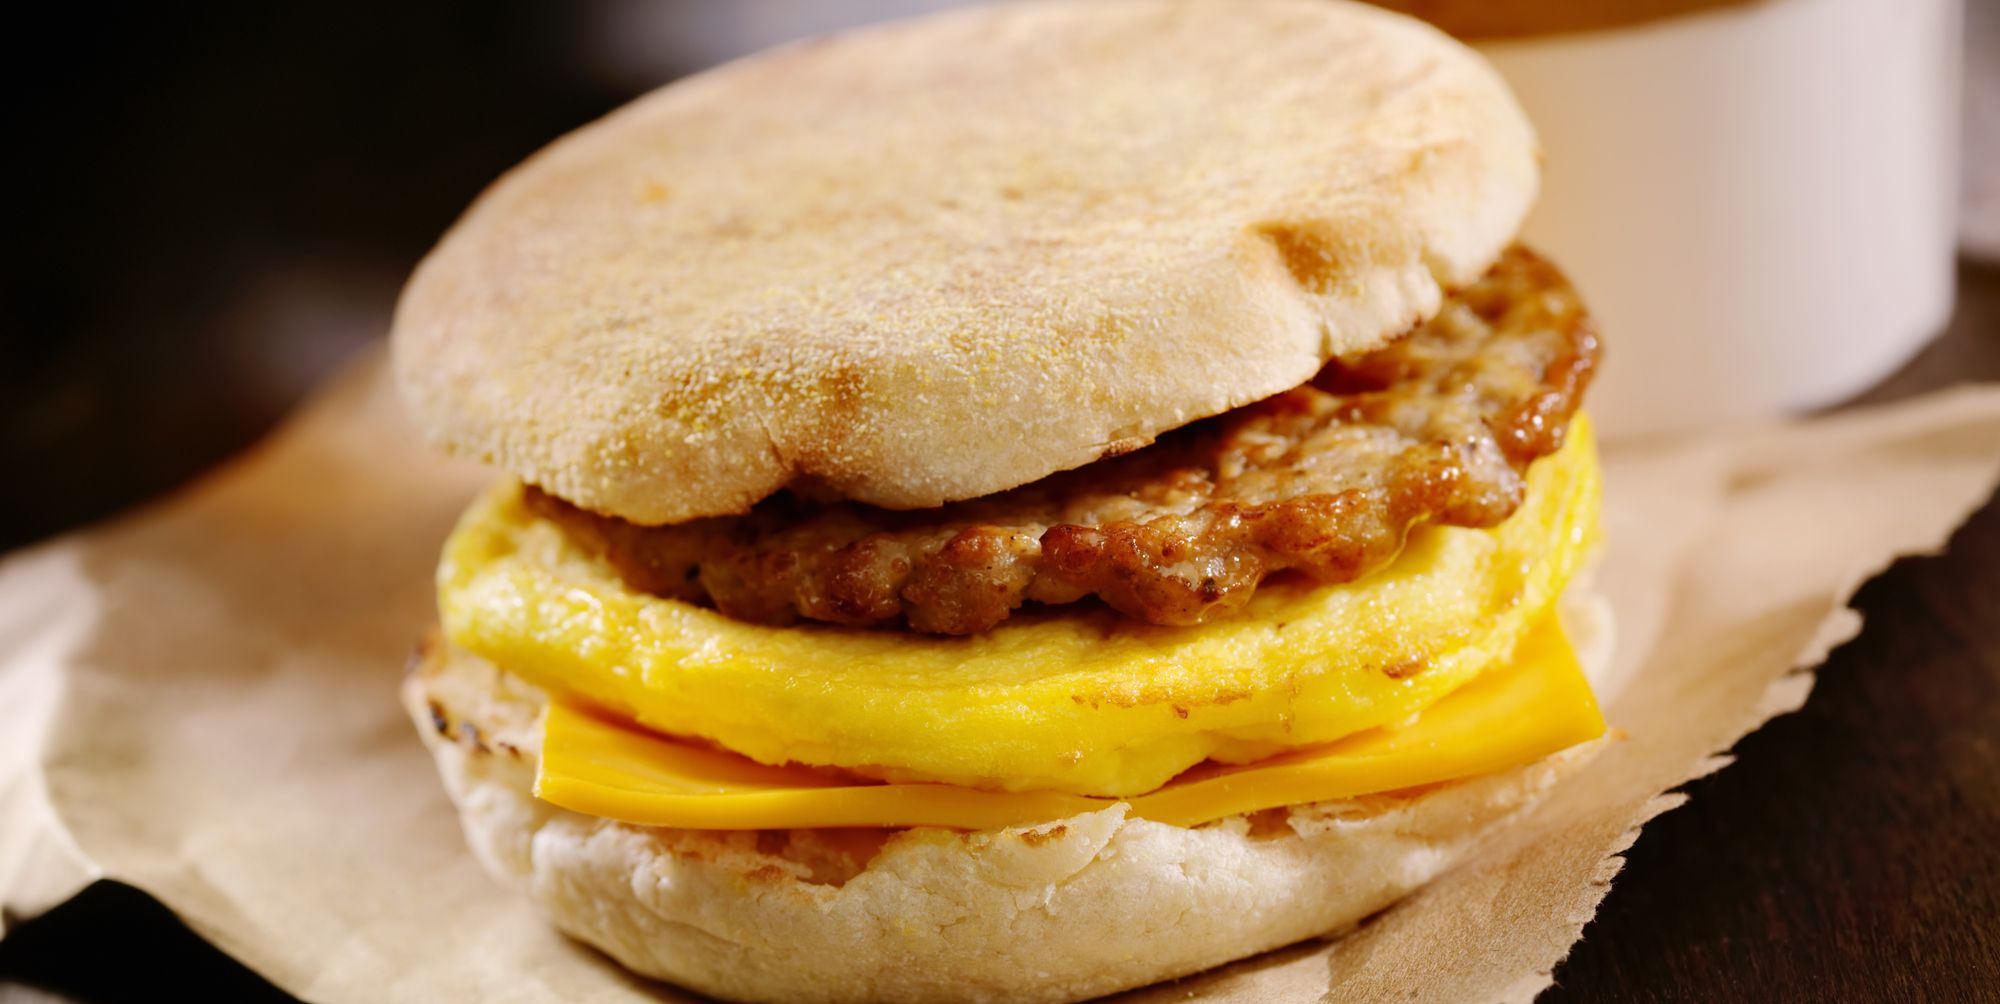 14 Healthiest Fast Food Breakfasts, According to Registered Dietitians